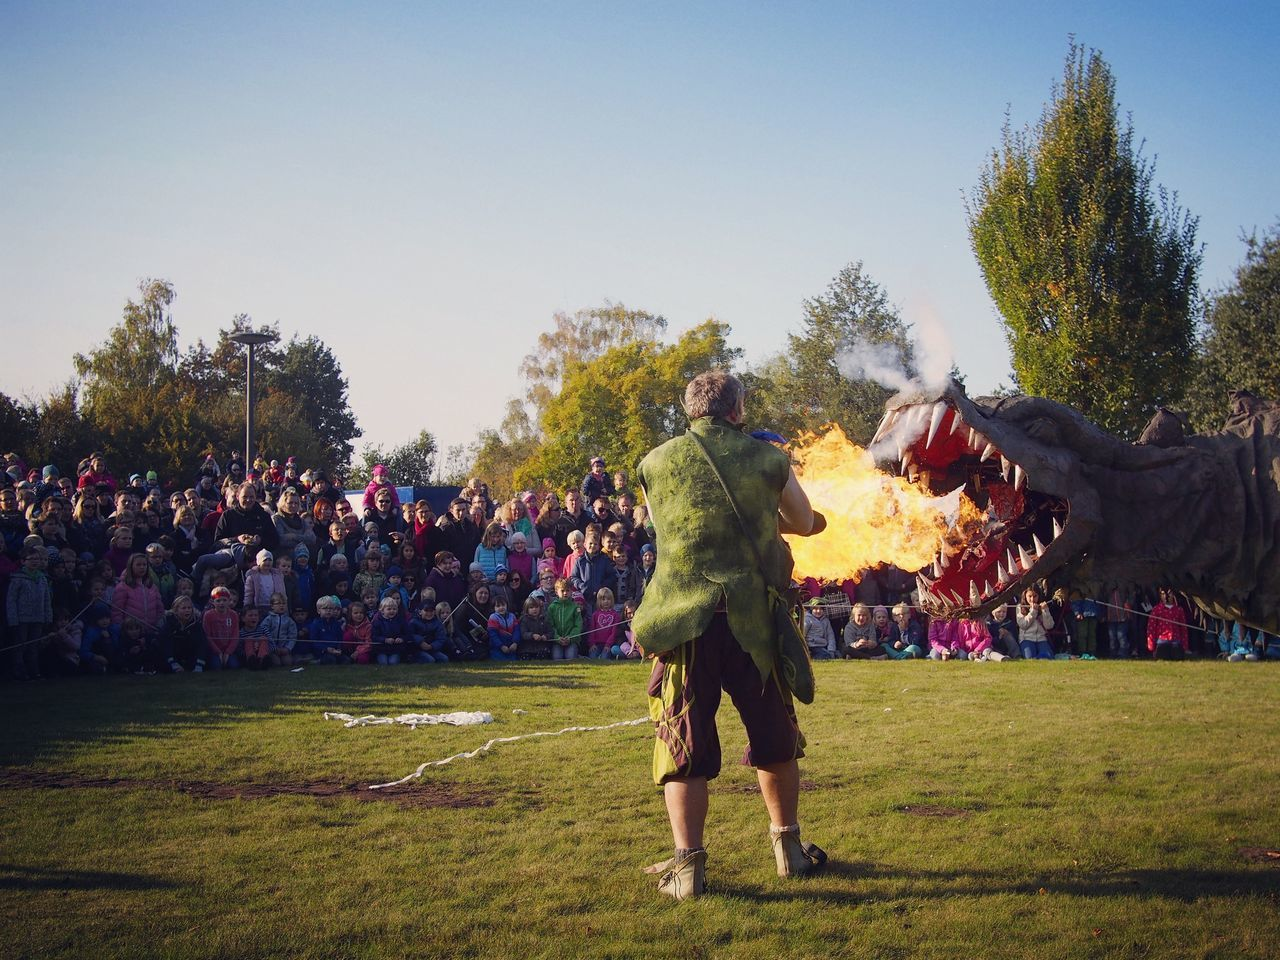 Fangdorn on fire - MAinLoveWithLife and Big Dragon Spitting  Fire Dragon Fire Dragon Dragon Fire Hot Hot Stuff Really Hot Audience Watching People People Photography Events Event Photography Children Children Photography Childhood Ancient Ancient Times Be Hot Be Yourself How I Feel At Times How I See The World - 23.10.2016